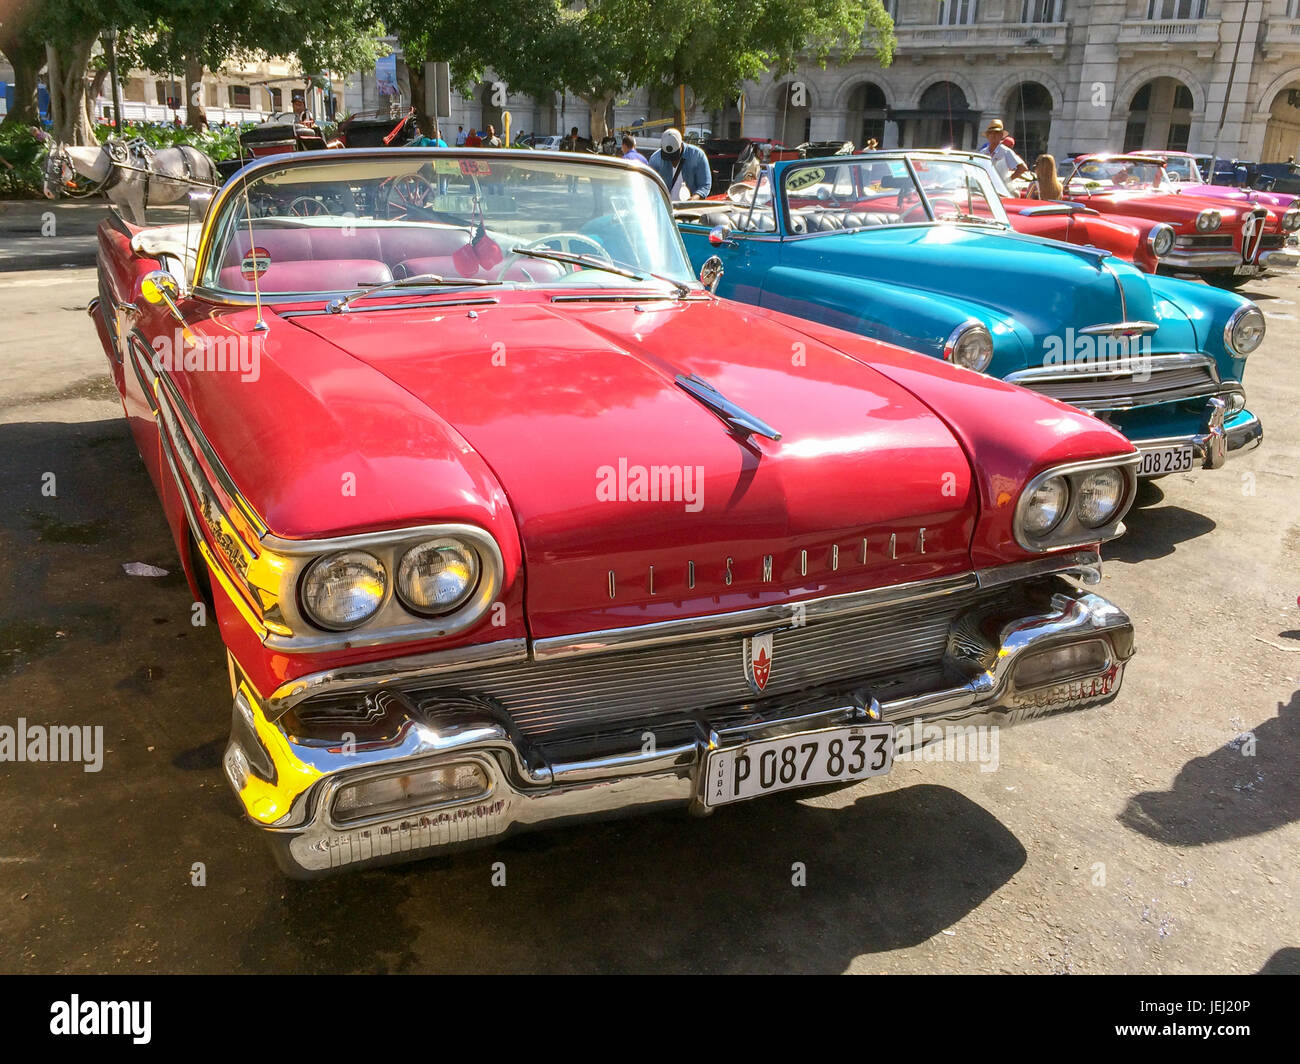 HAVANA, CUBA - APRIL 18: Vintage american classic cars parked in the ...